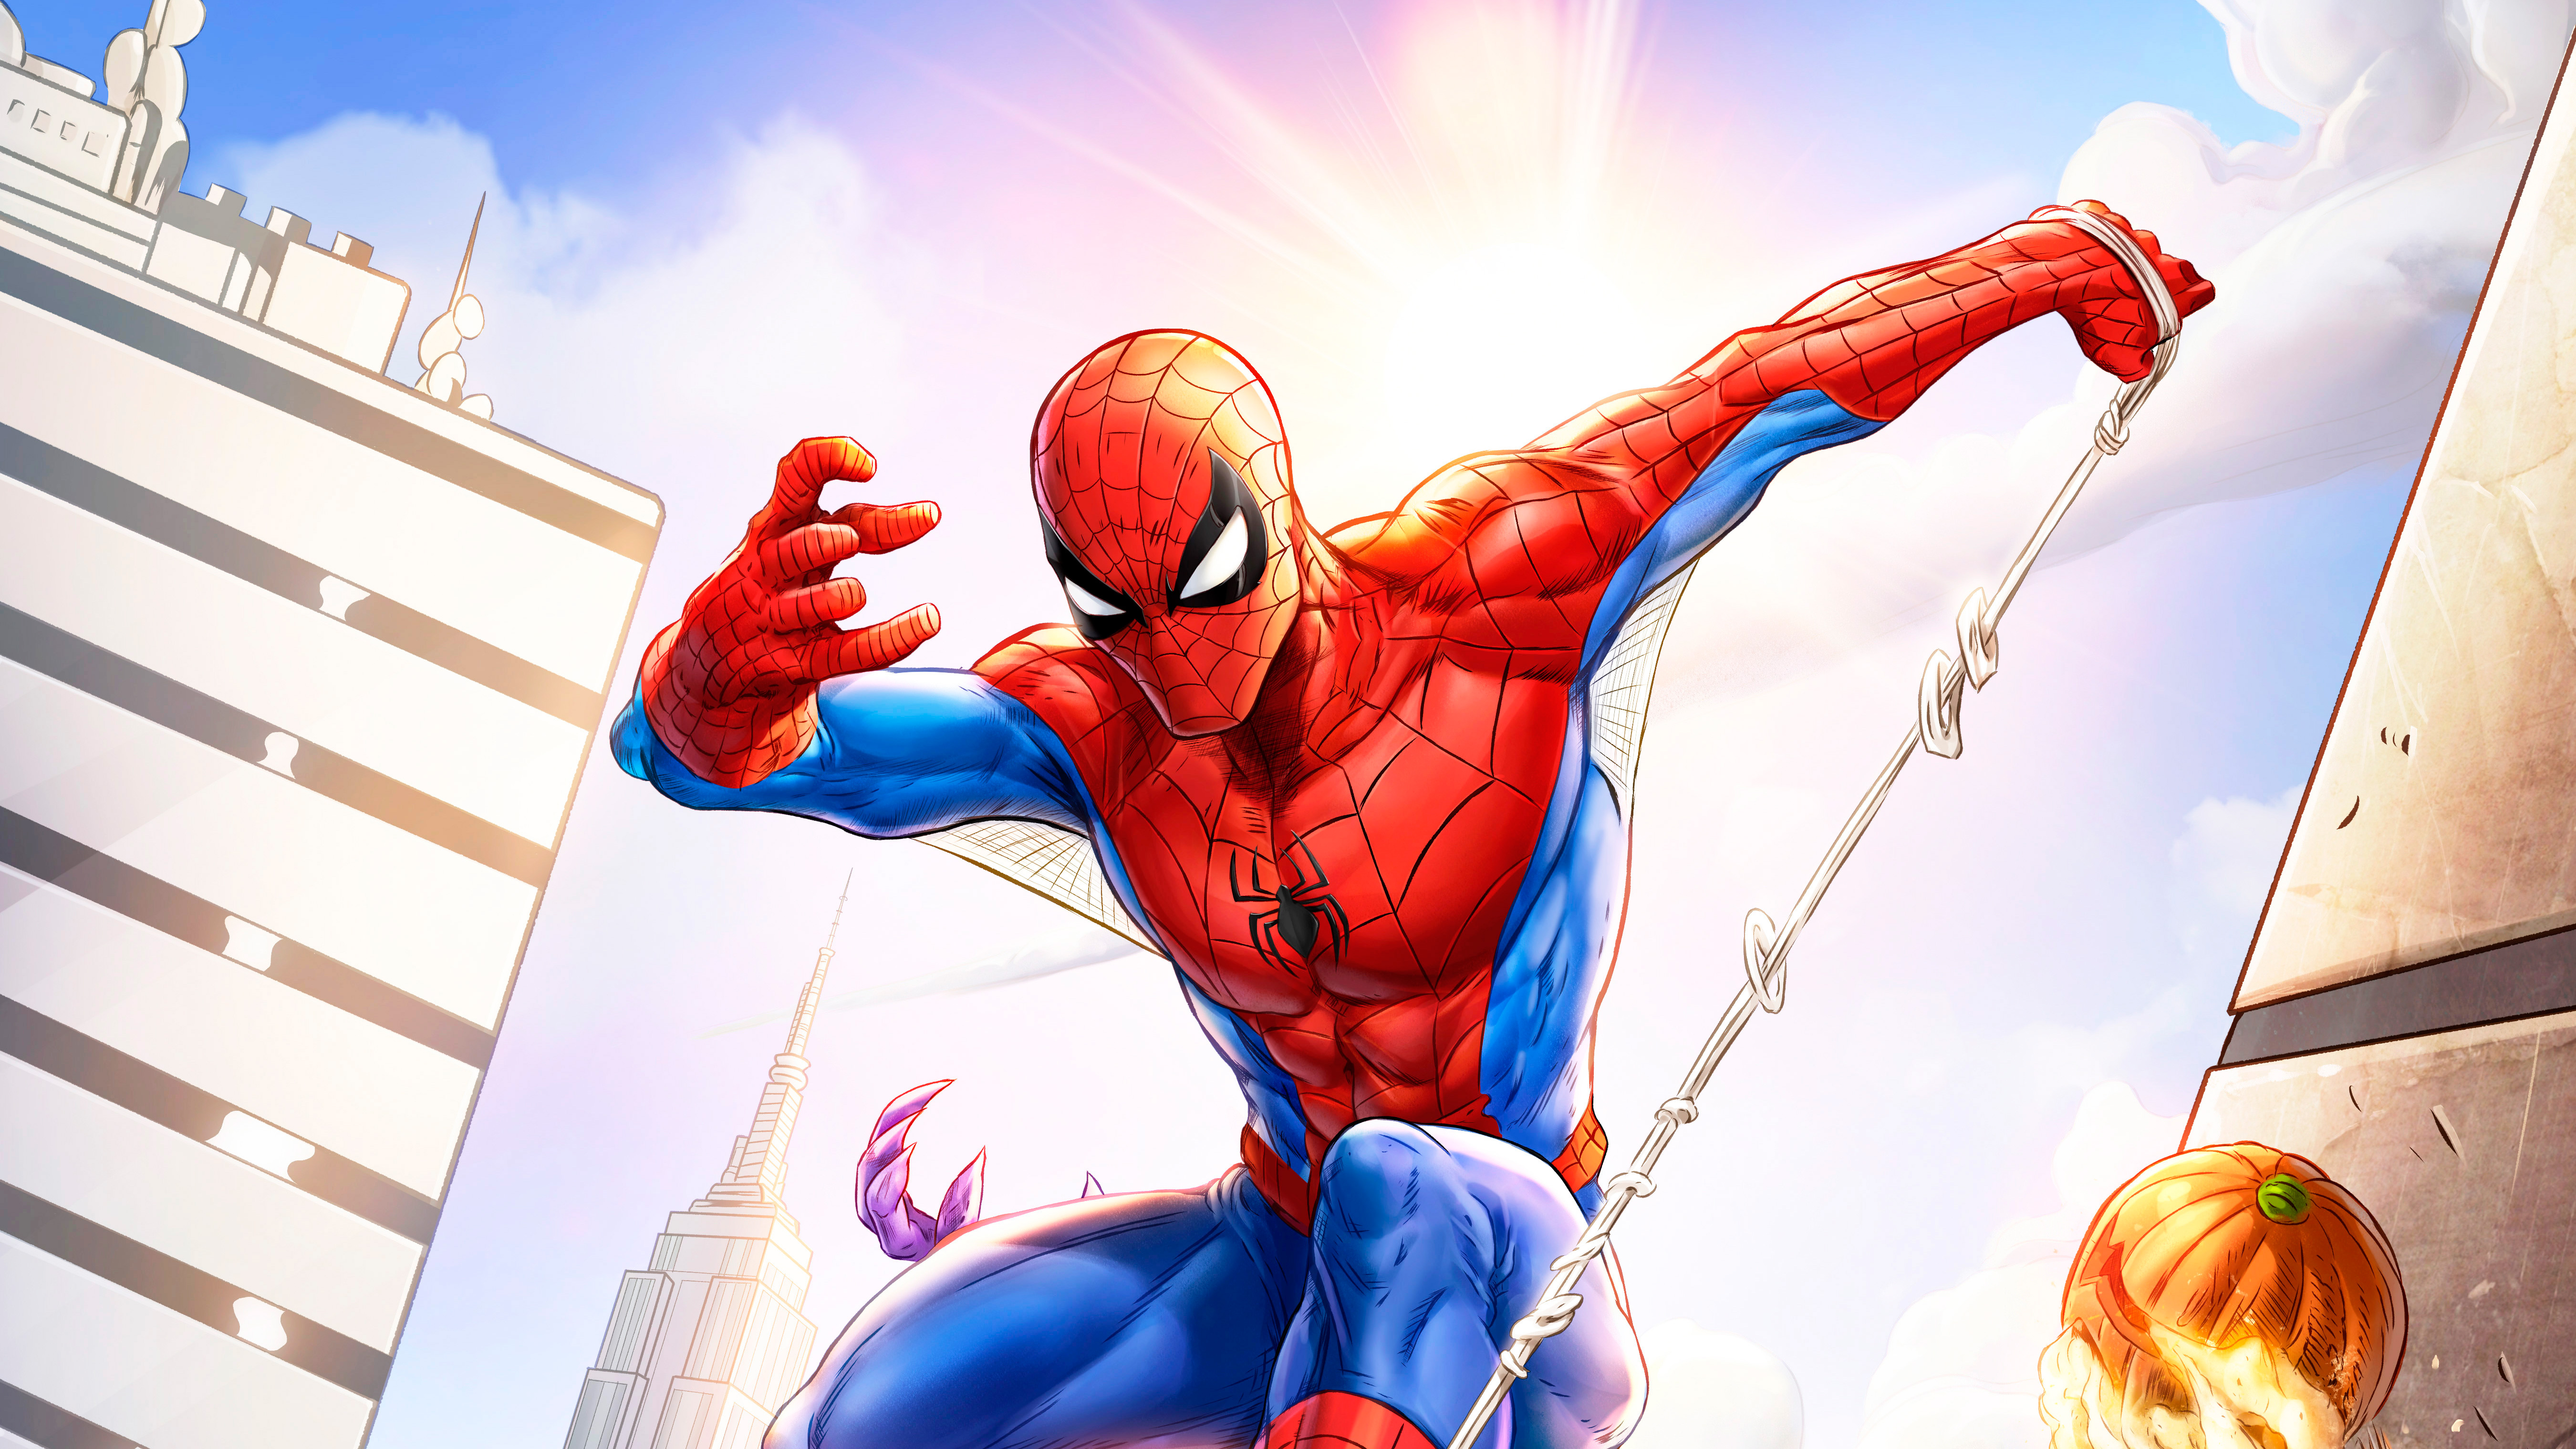 5k Spiderman 2018, HD Superheroes, 4k Wallpapers, Images, Backgrounds, Photos and Pictures